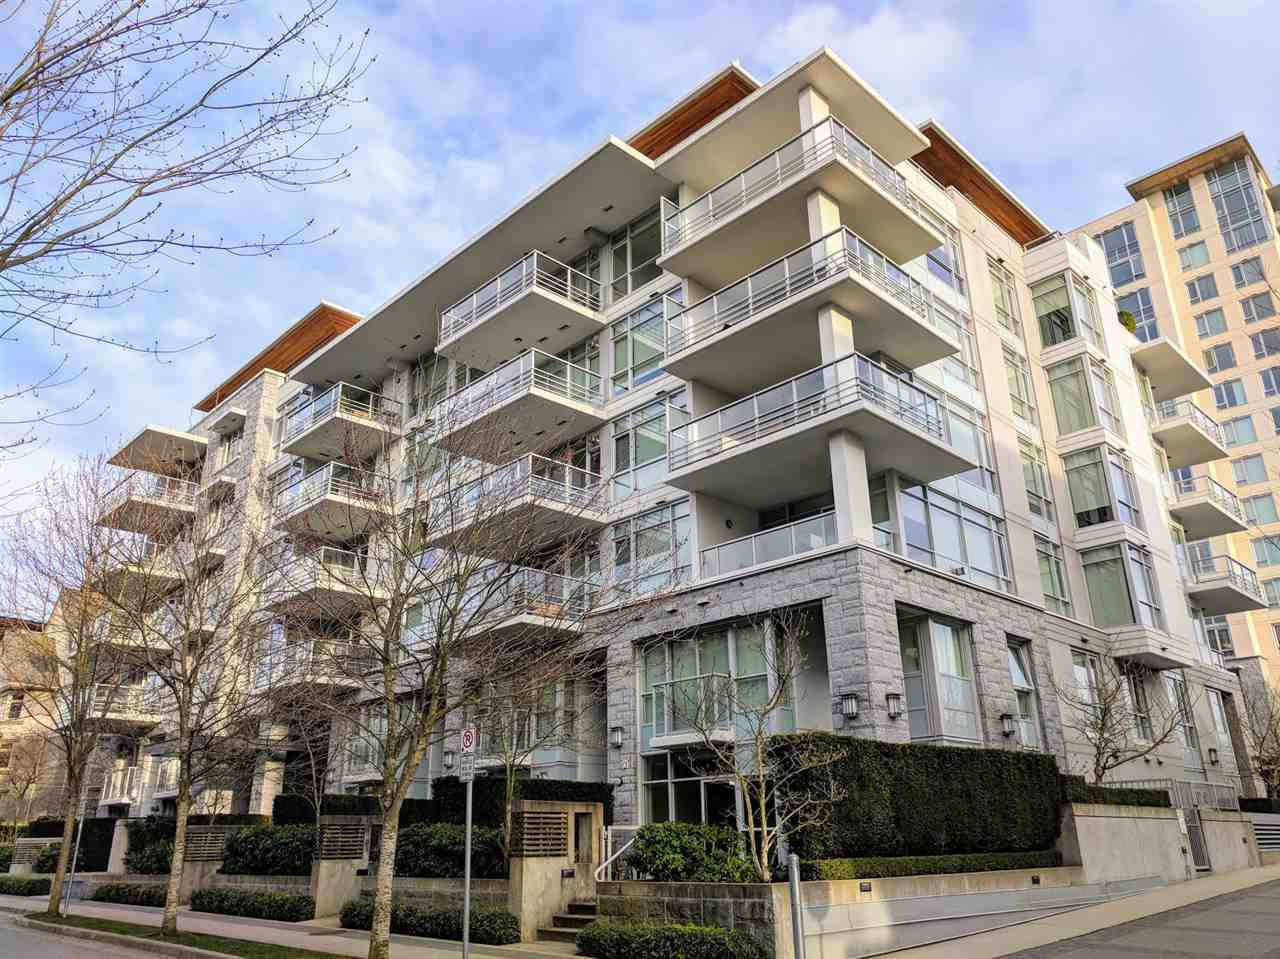 """Main Photo: 305 6080 IONA Drive in Vancouver: University VW Condo for sale in """"Stirling House"""" (Vancouver West)  : MLS®# R2246869"""